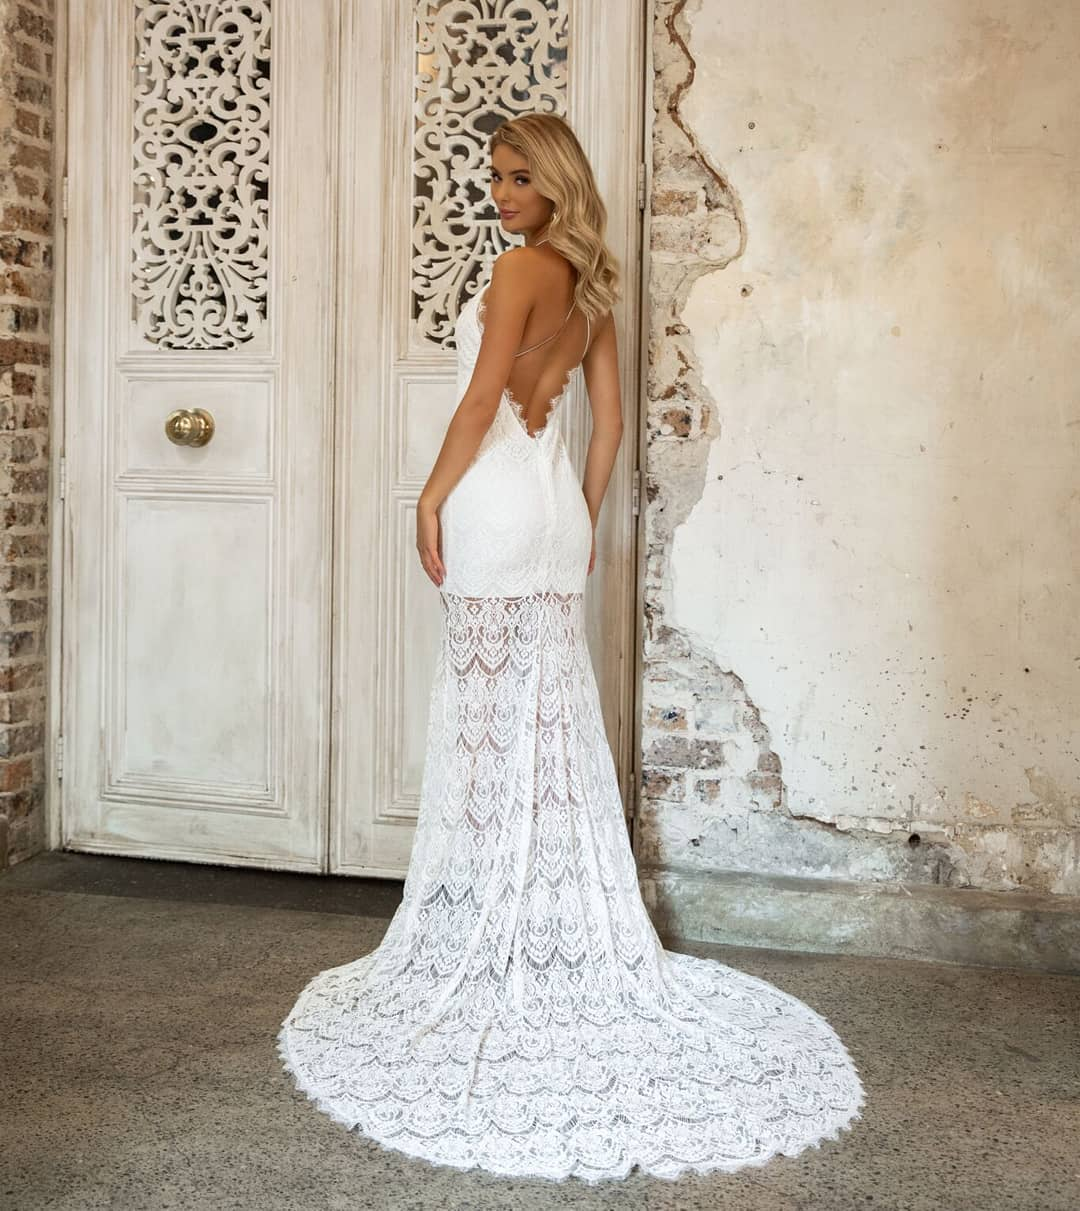 Where To Buy A Cheap And Affordable Wedding Dress On A Tight Budget,Create Your Own Wedding Dress Free